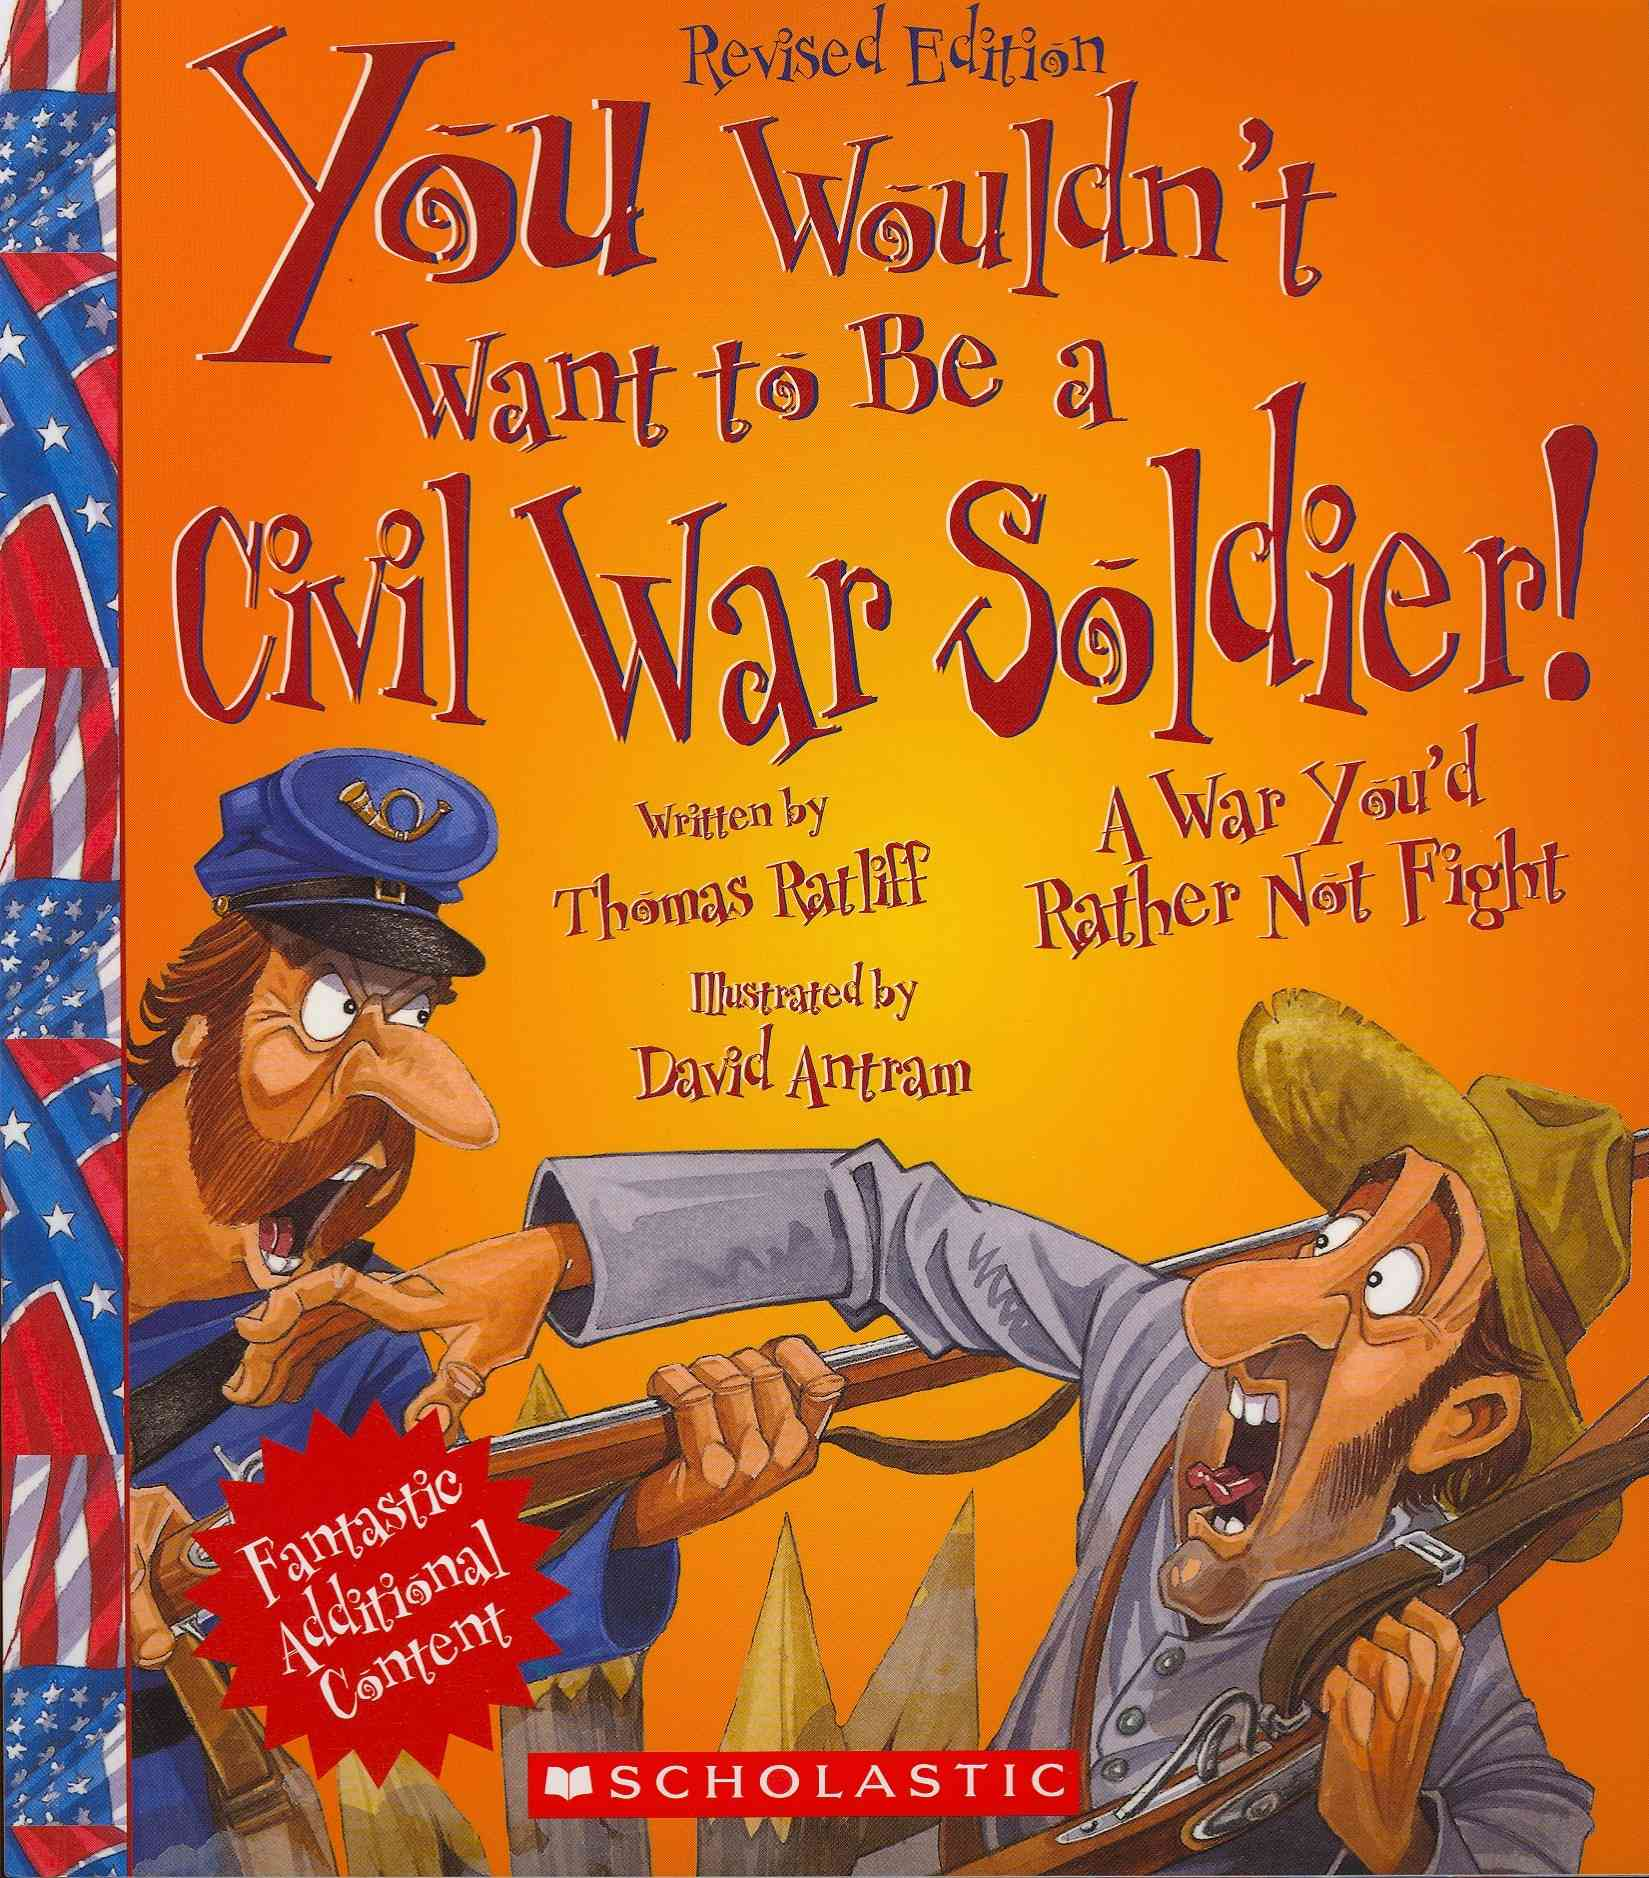 You Wouldn't Want to Be a Civil War Soldier! By Ratliff, Thomas